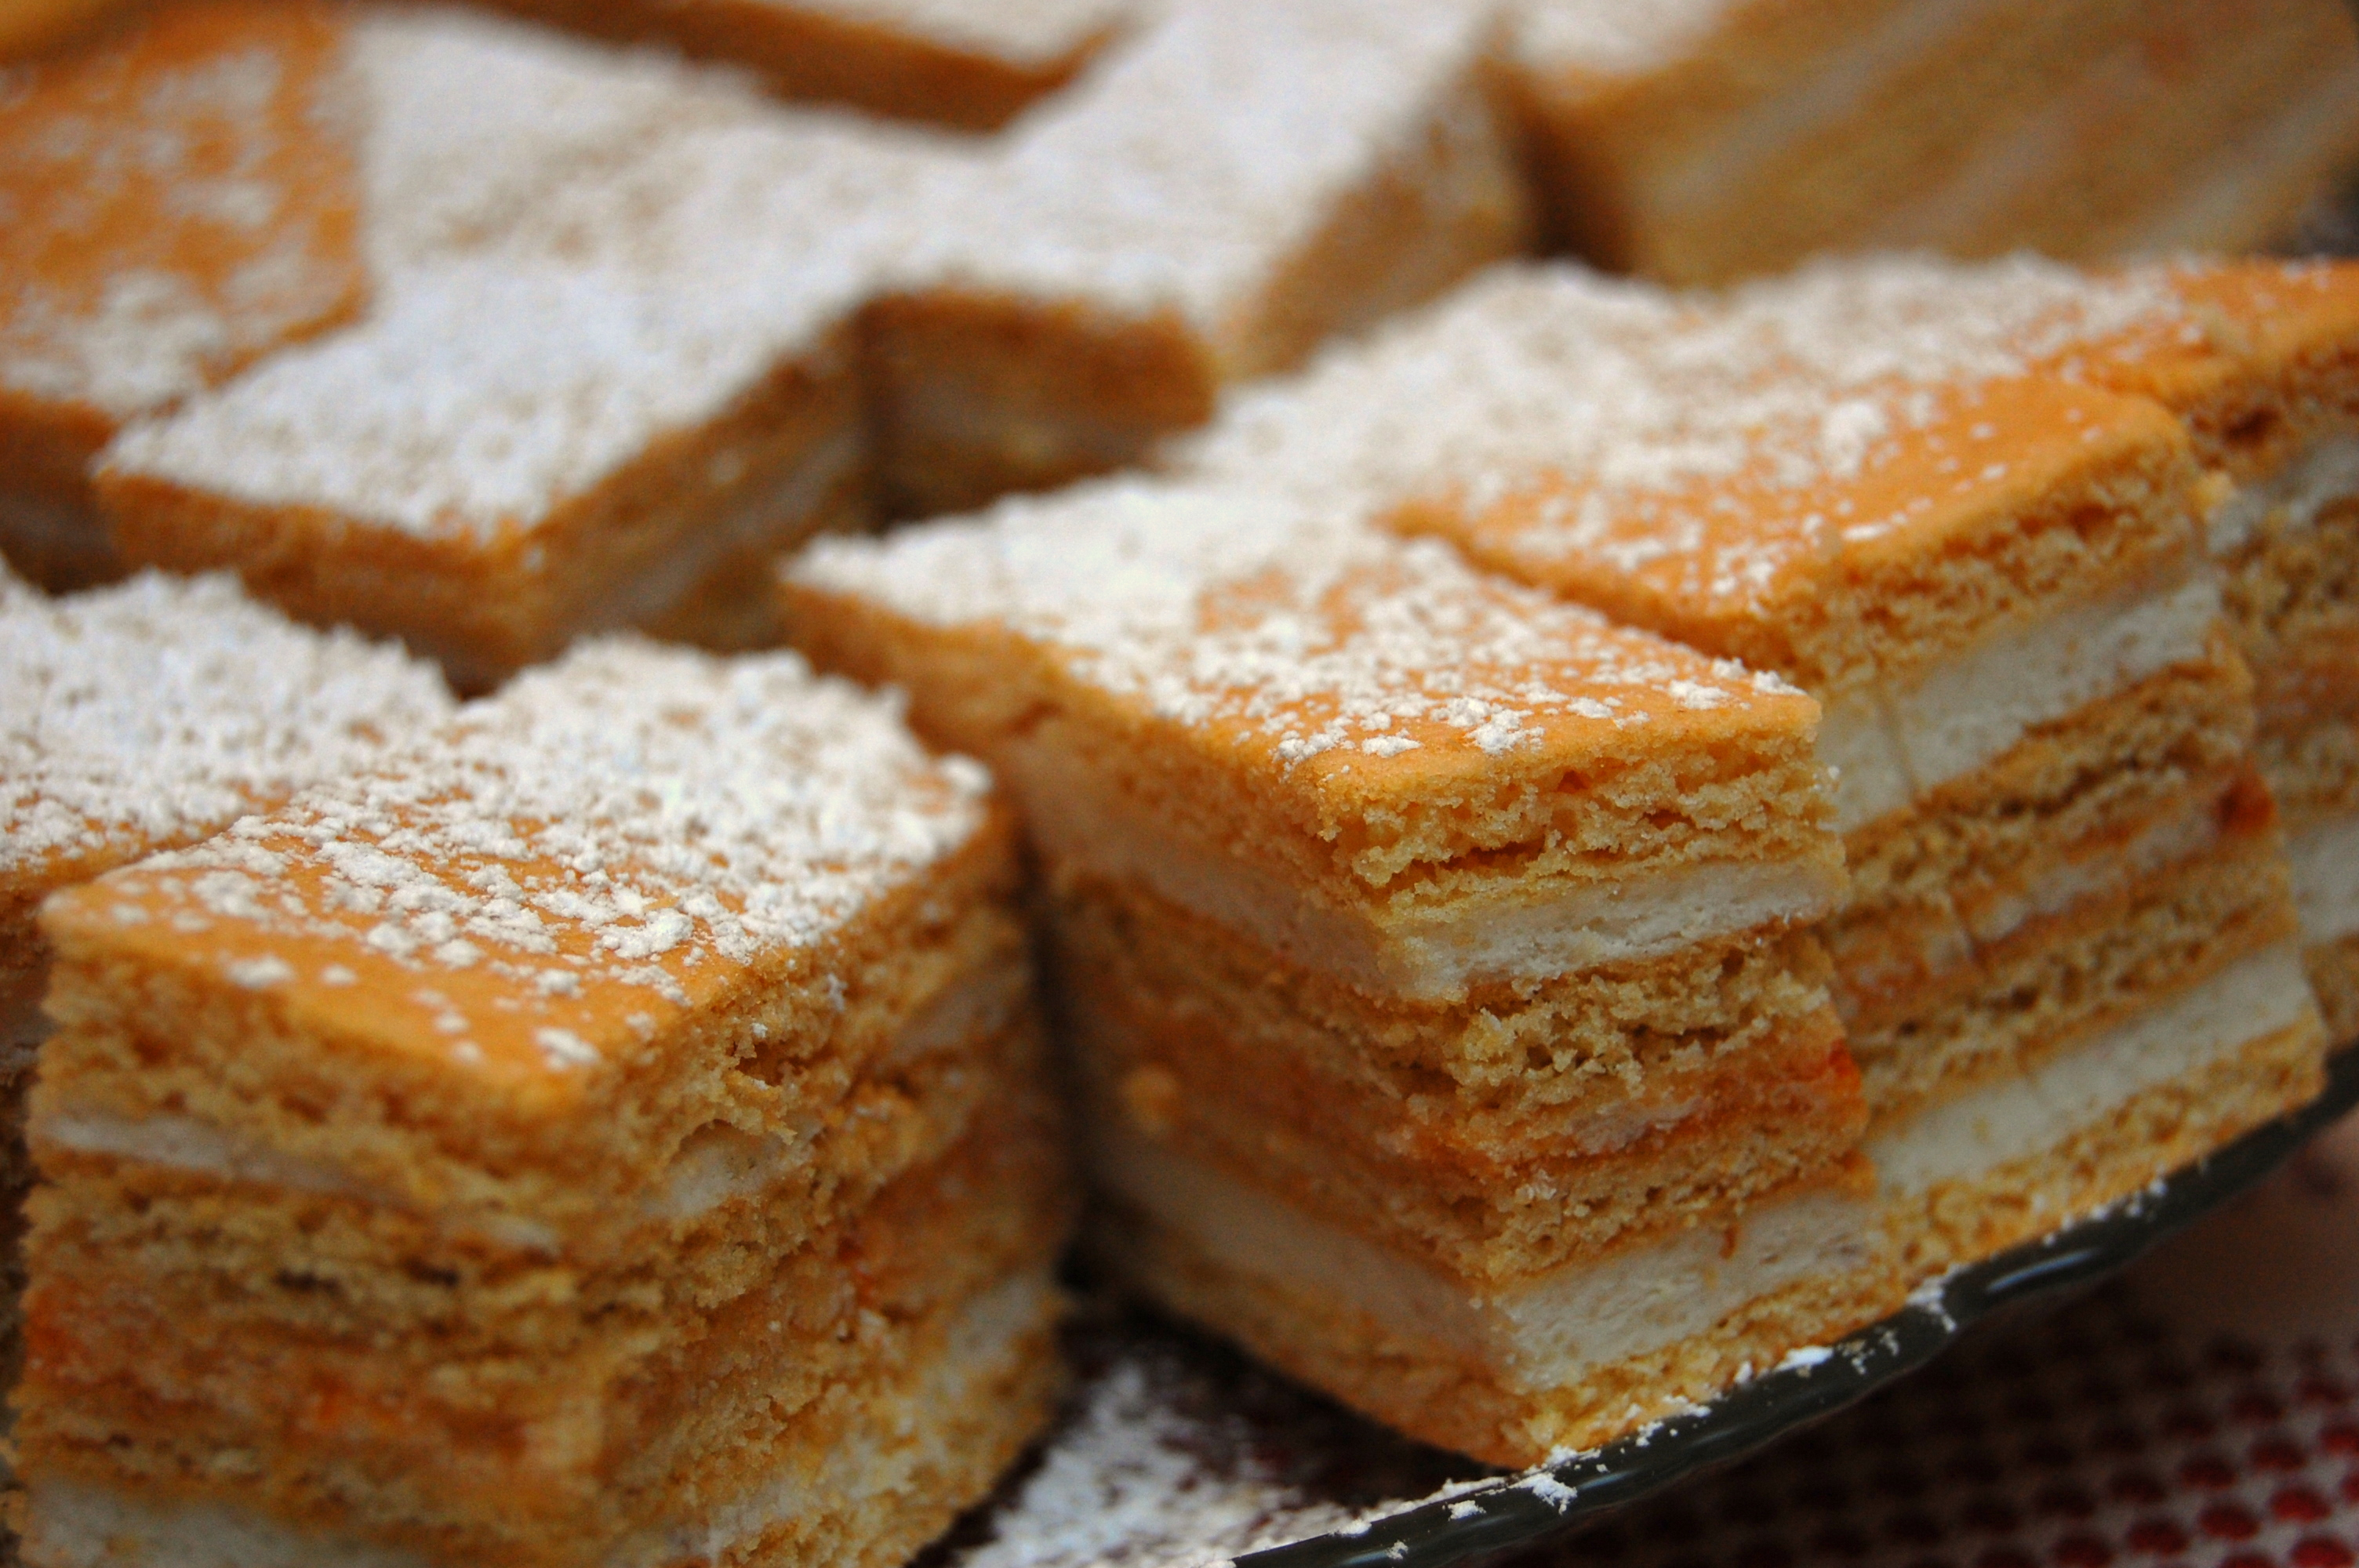 File:Hungarian Honey Cake (Mézes krémes).jpg - Wikimedia Commons